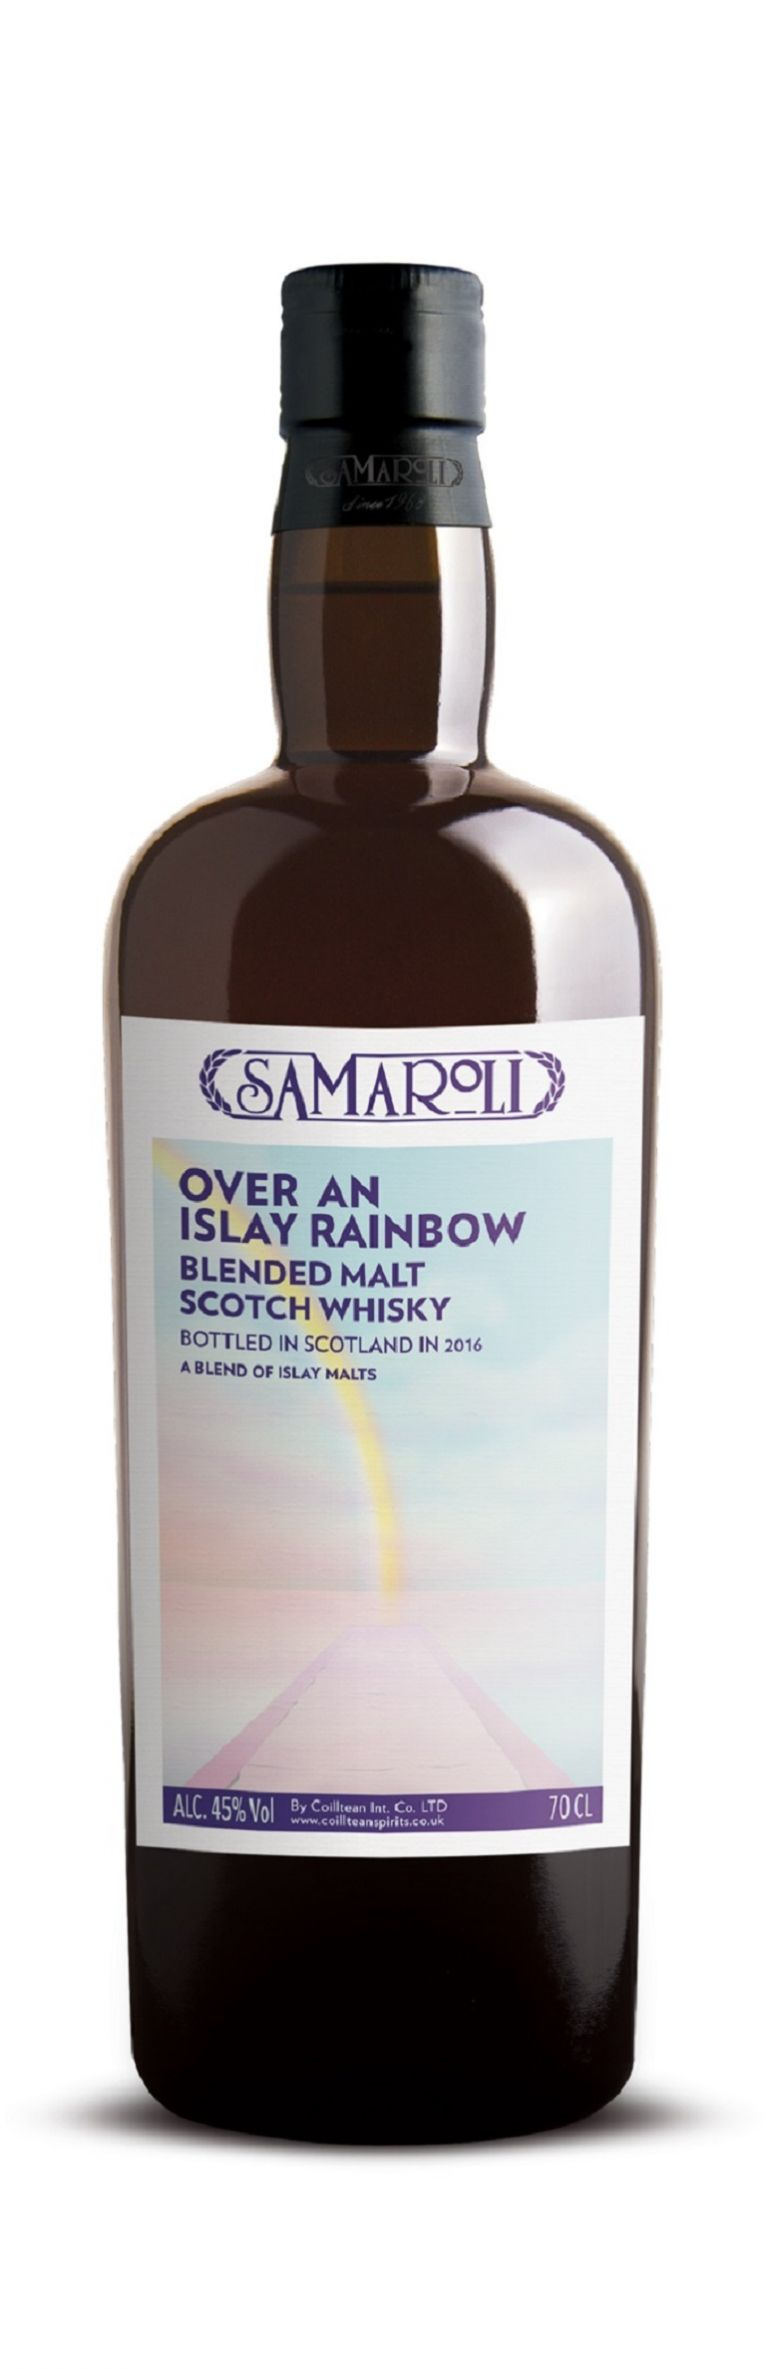 Over An Islay Rainbow - Blended Malt Scotch Whisky - ed. 2016 - 70 cl